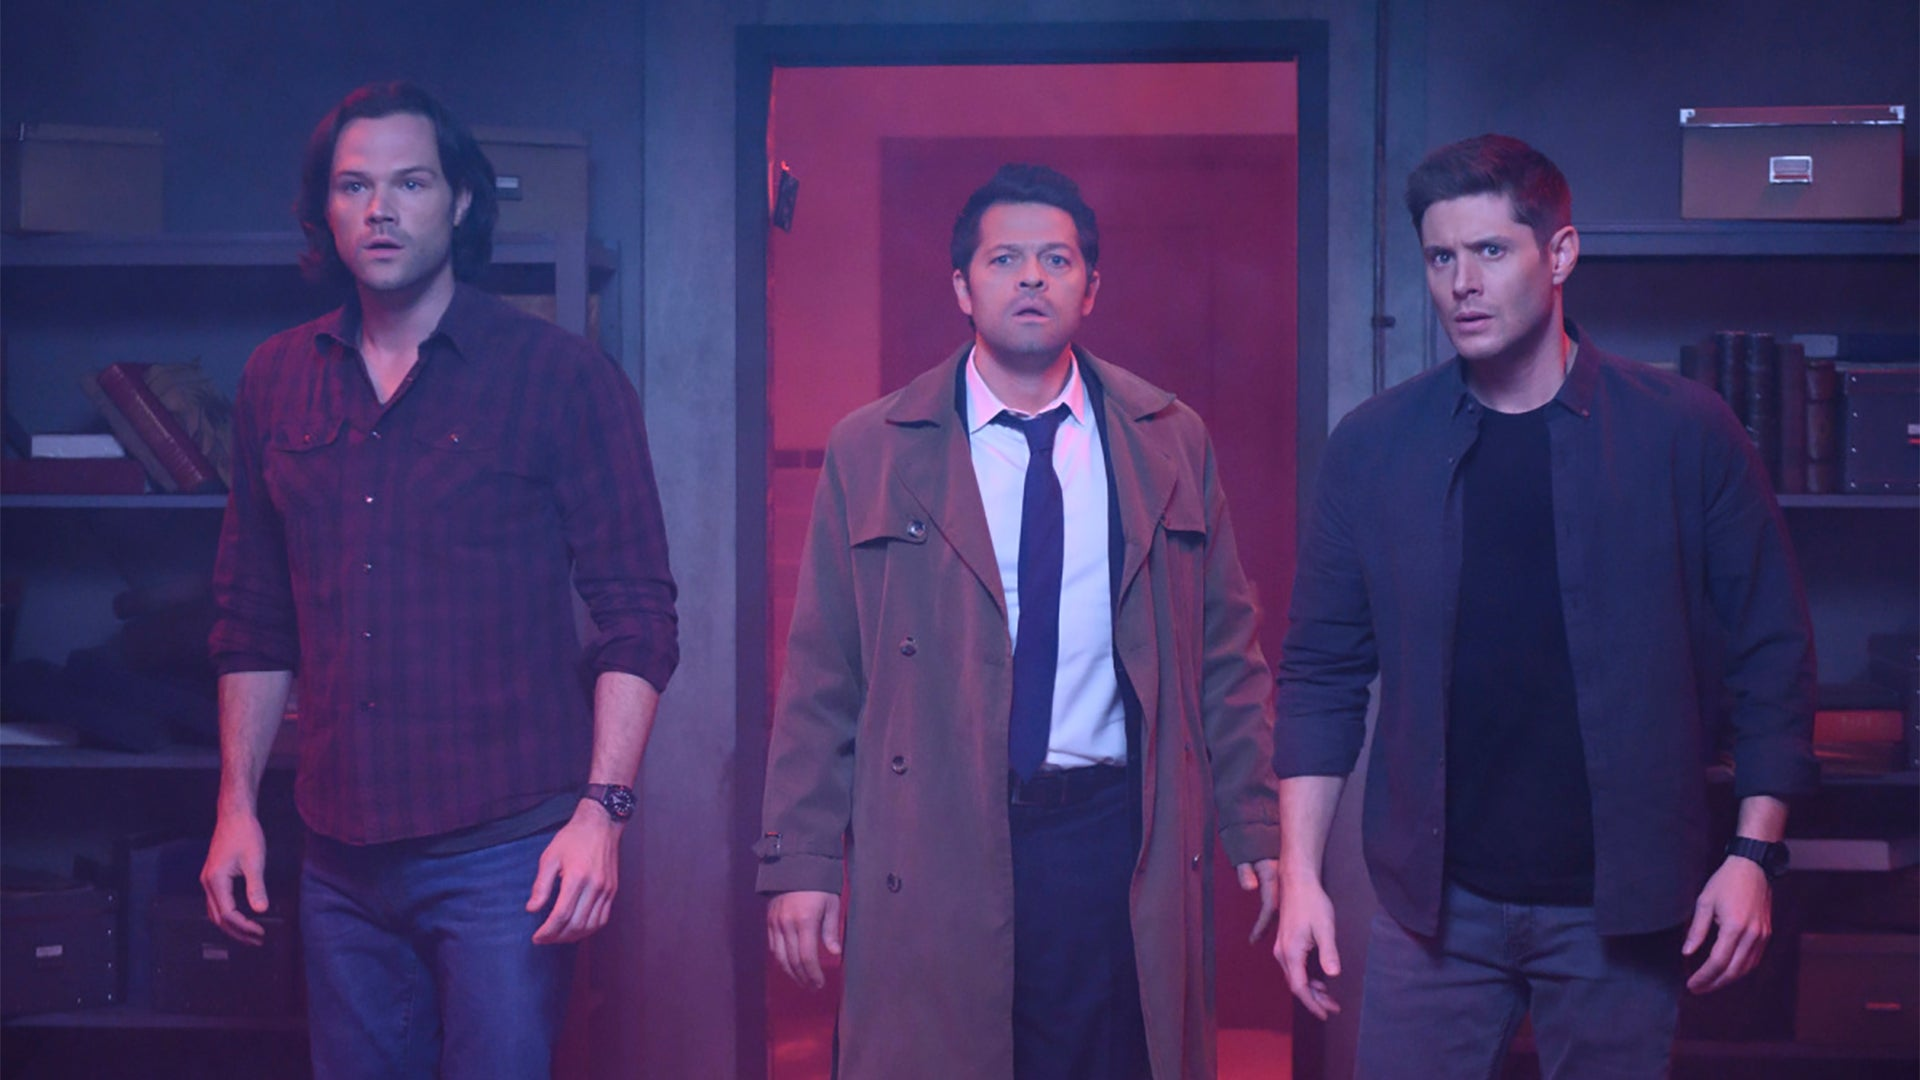 ​Jared Padalecki, Misha Collins, and Jensen Akcles, Supernatural